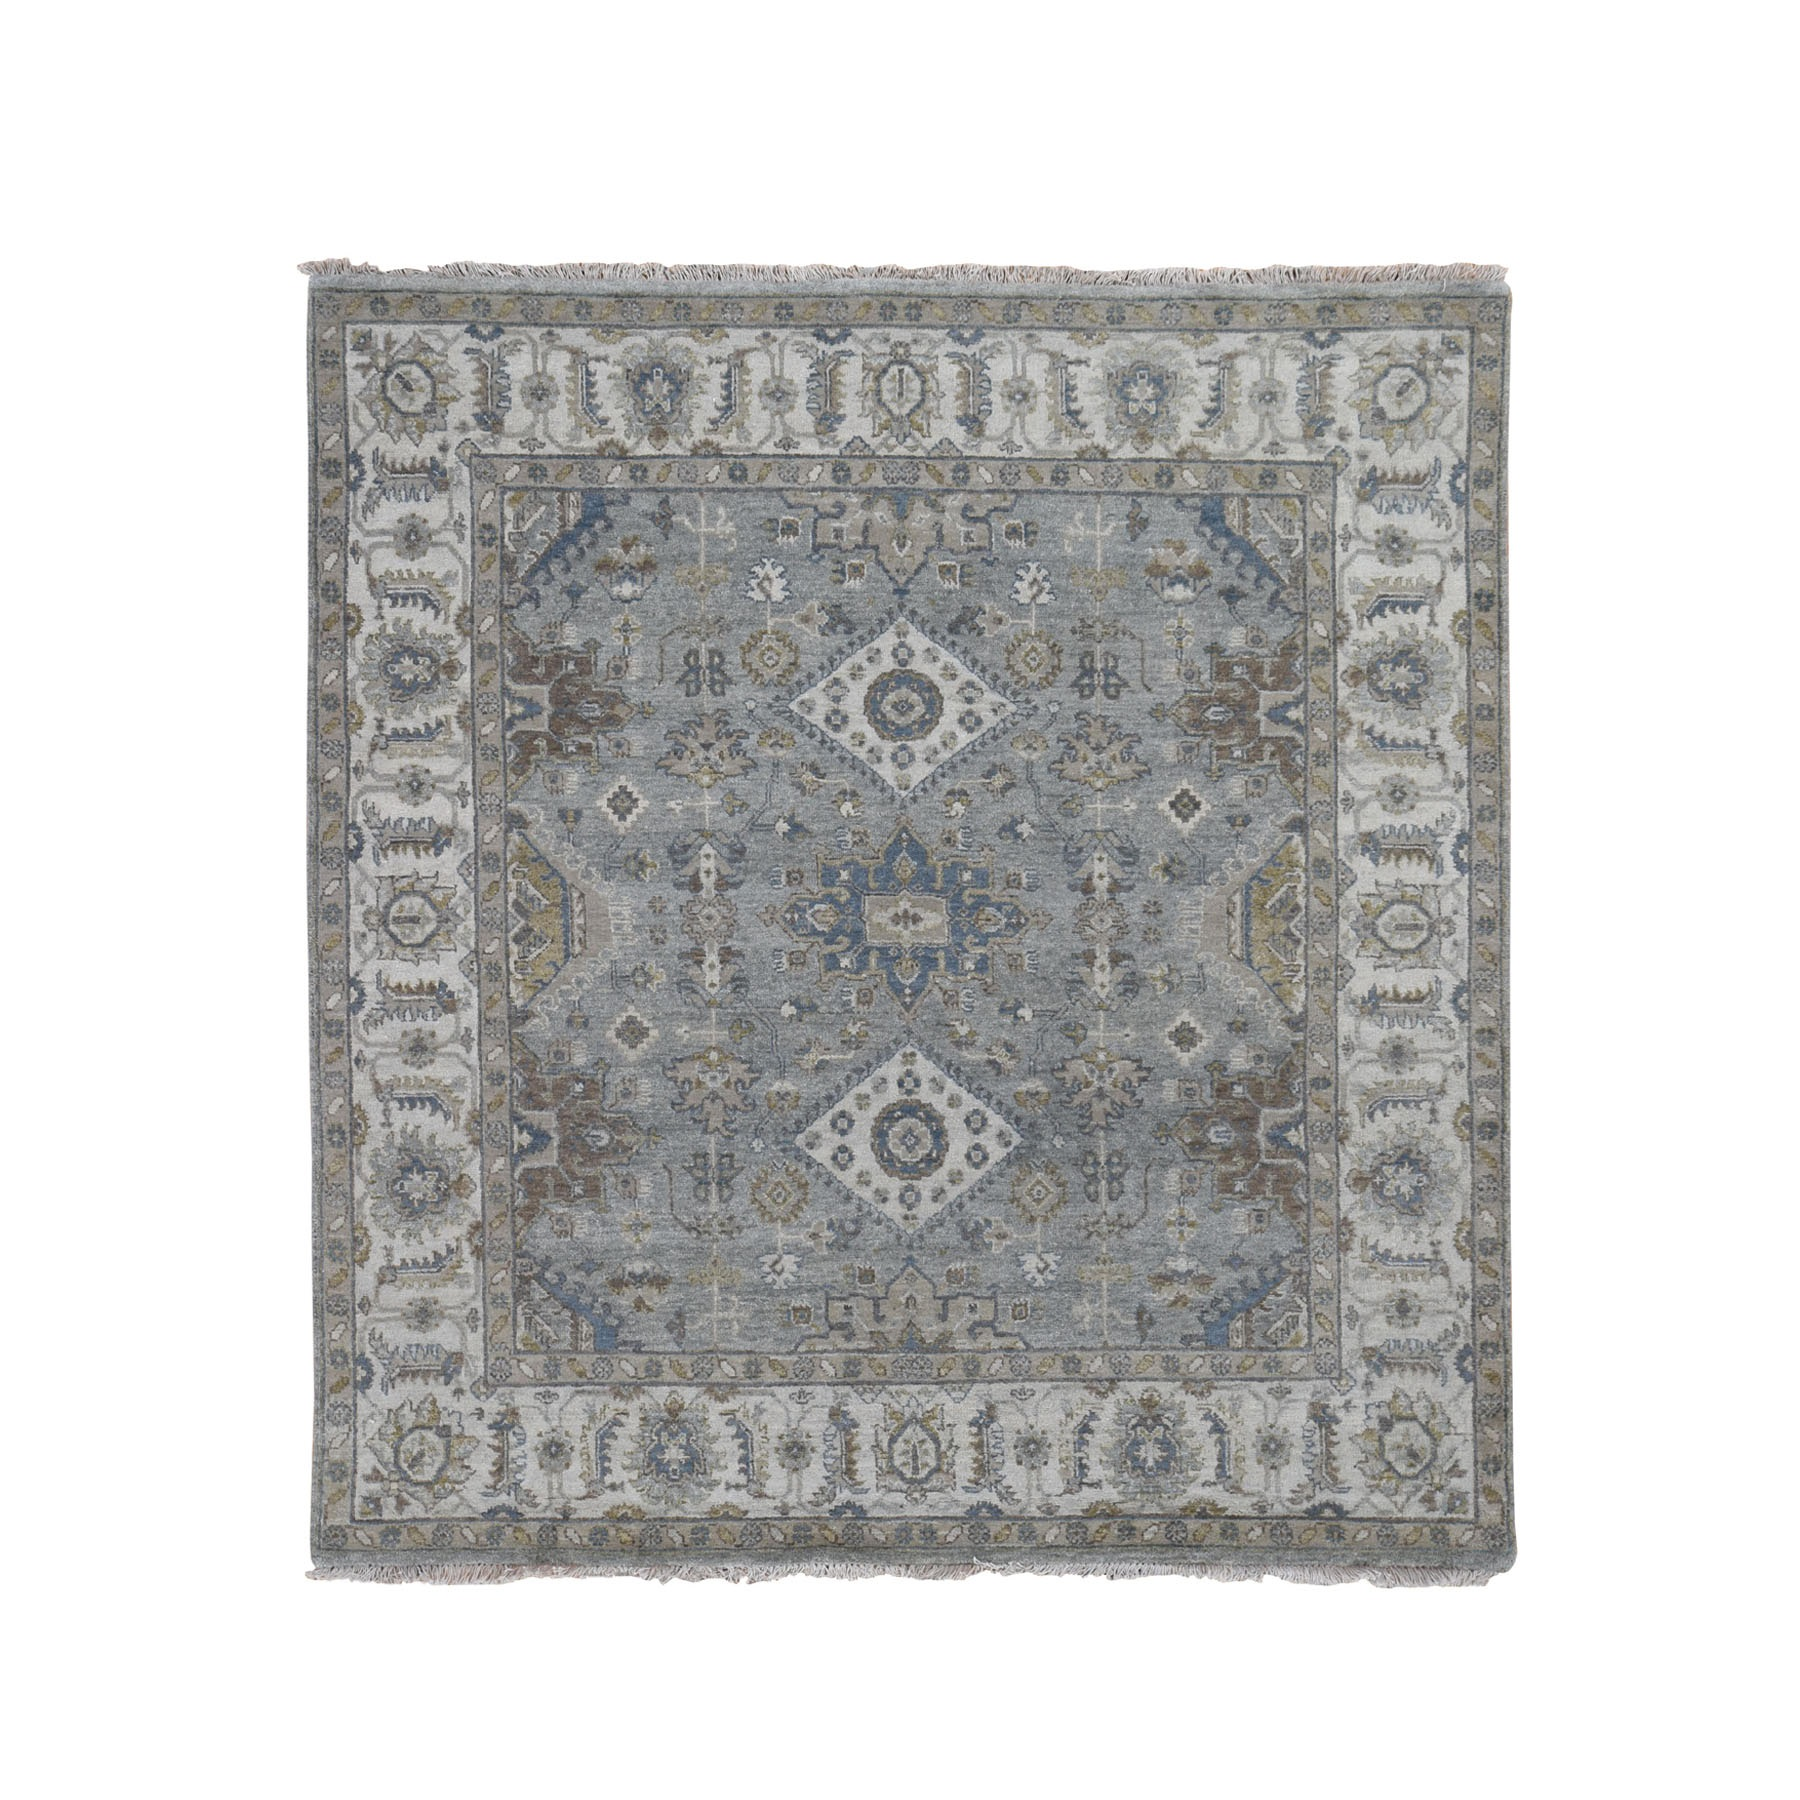 "6'2""x6'2"" Square Gray Karajeh Design Pure Wool Hand Knotted Oriental Rug"